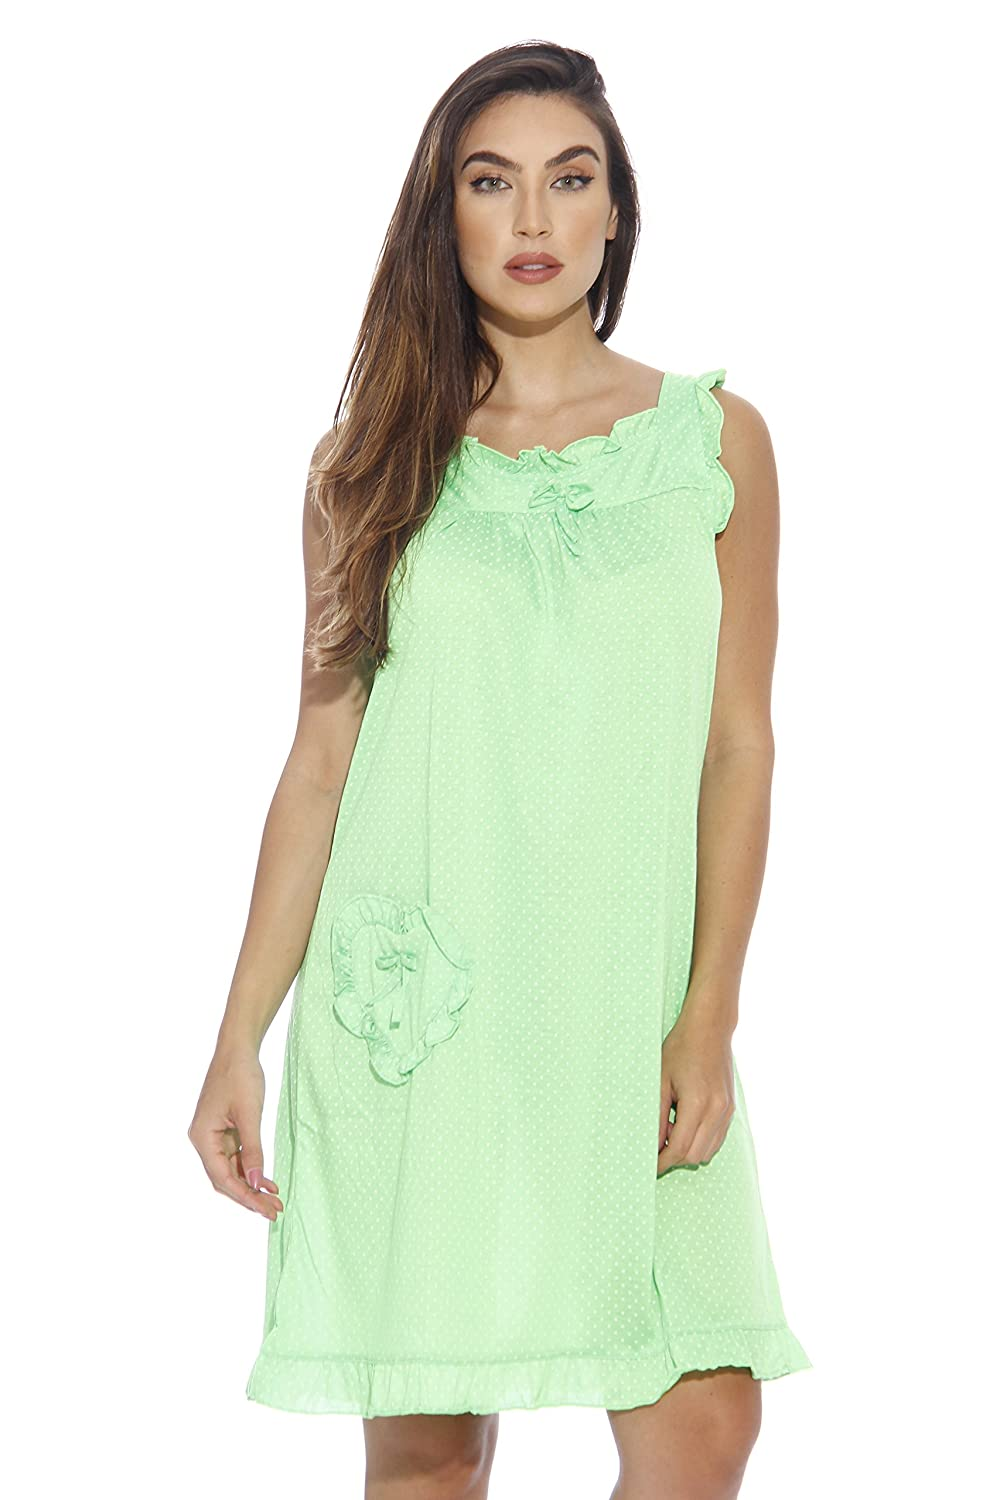 41a47e2a5d0 SLEEP LIKE A BABY  Dreamcrest s nightgowns for women are designed with  ultra-comfort in mind. You ll love the luxuriously soft fabric that feels  amazing on ...